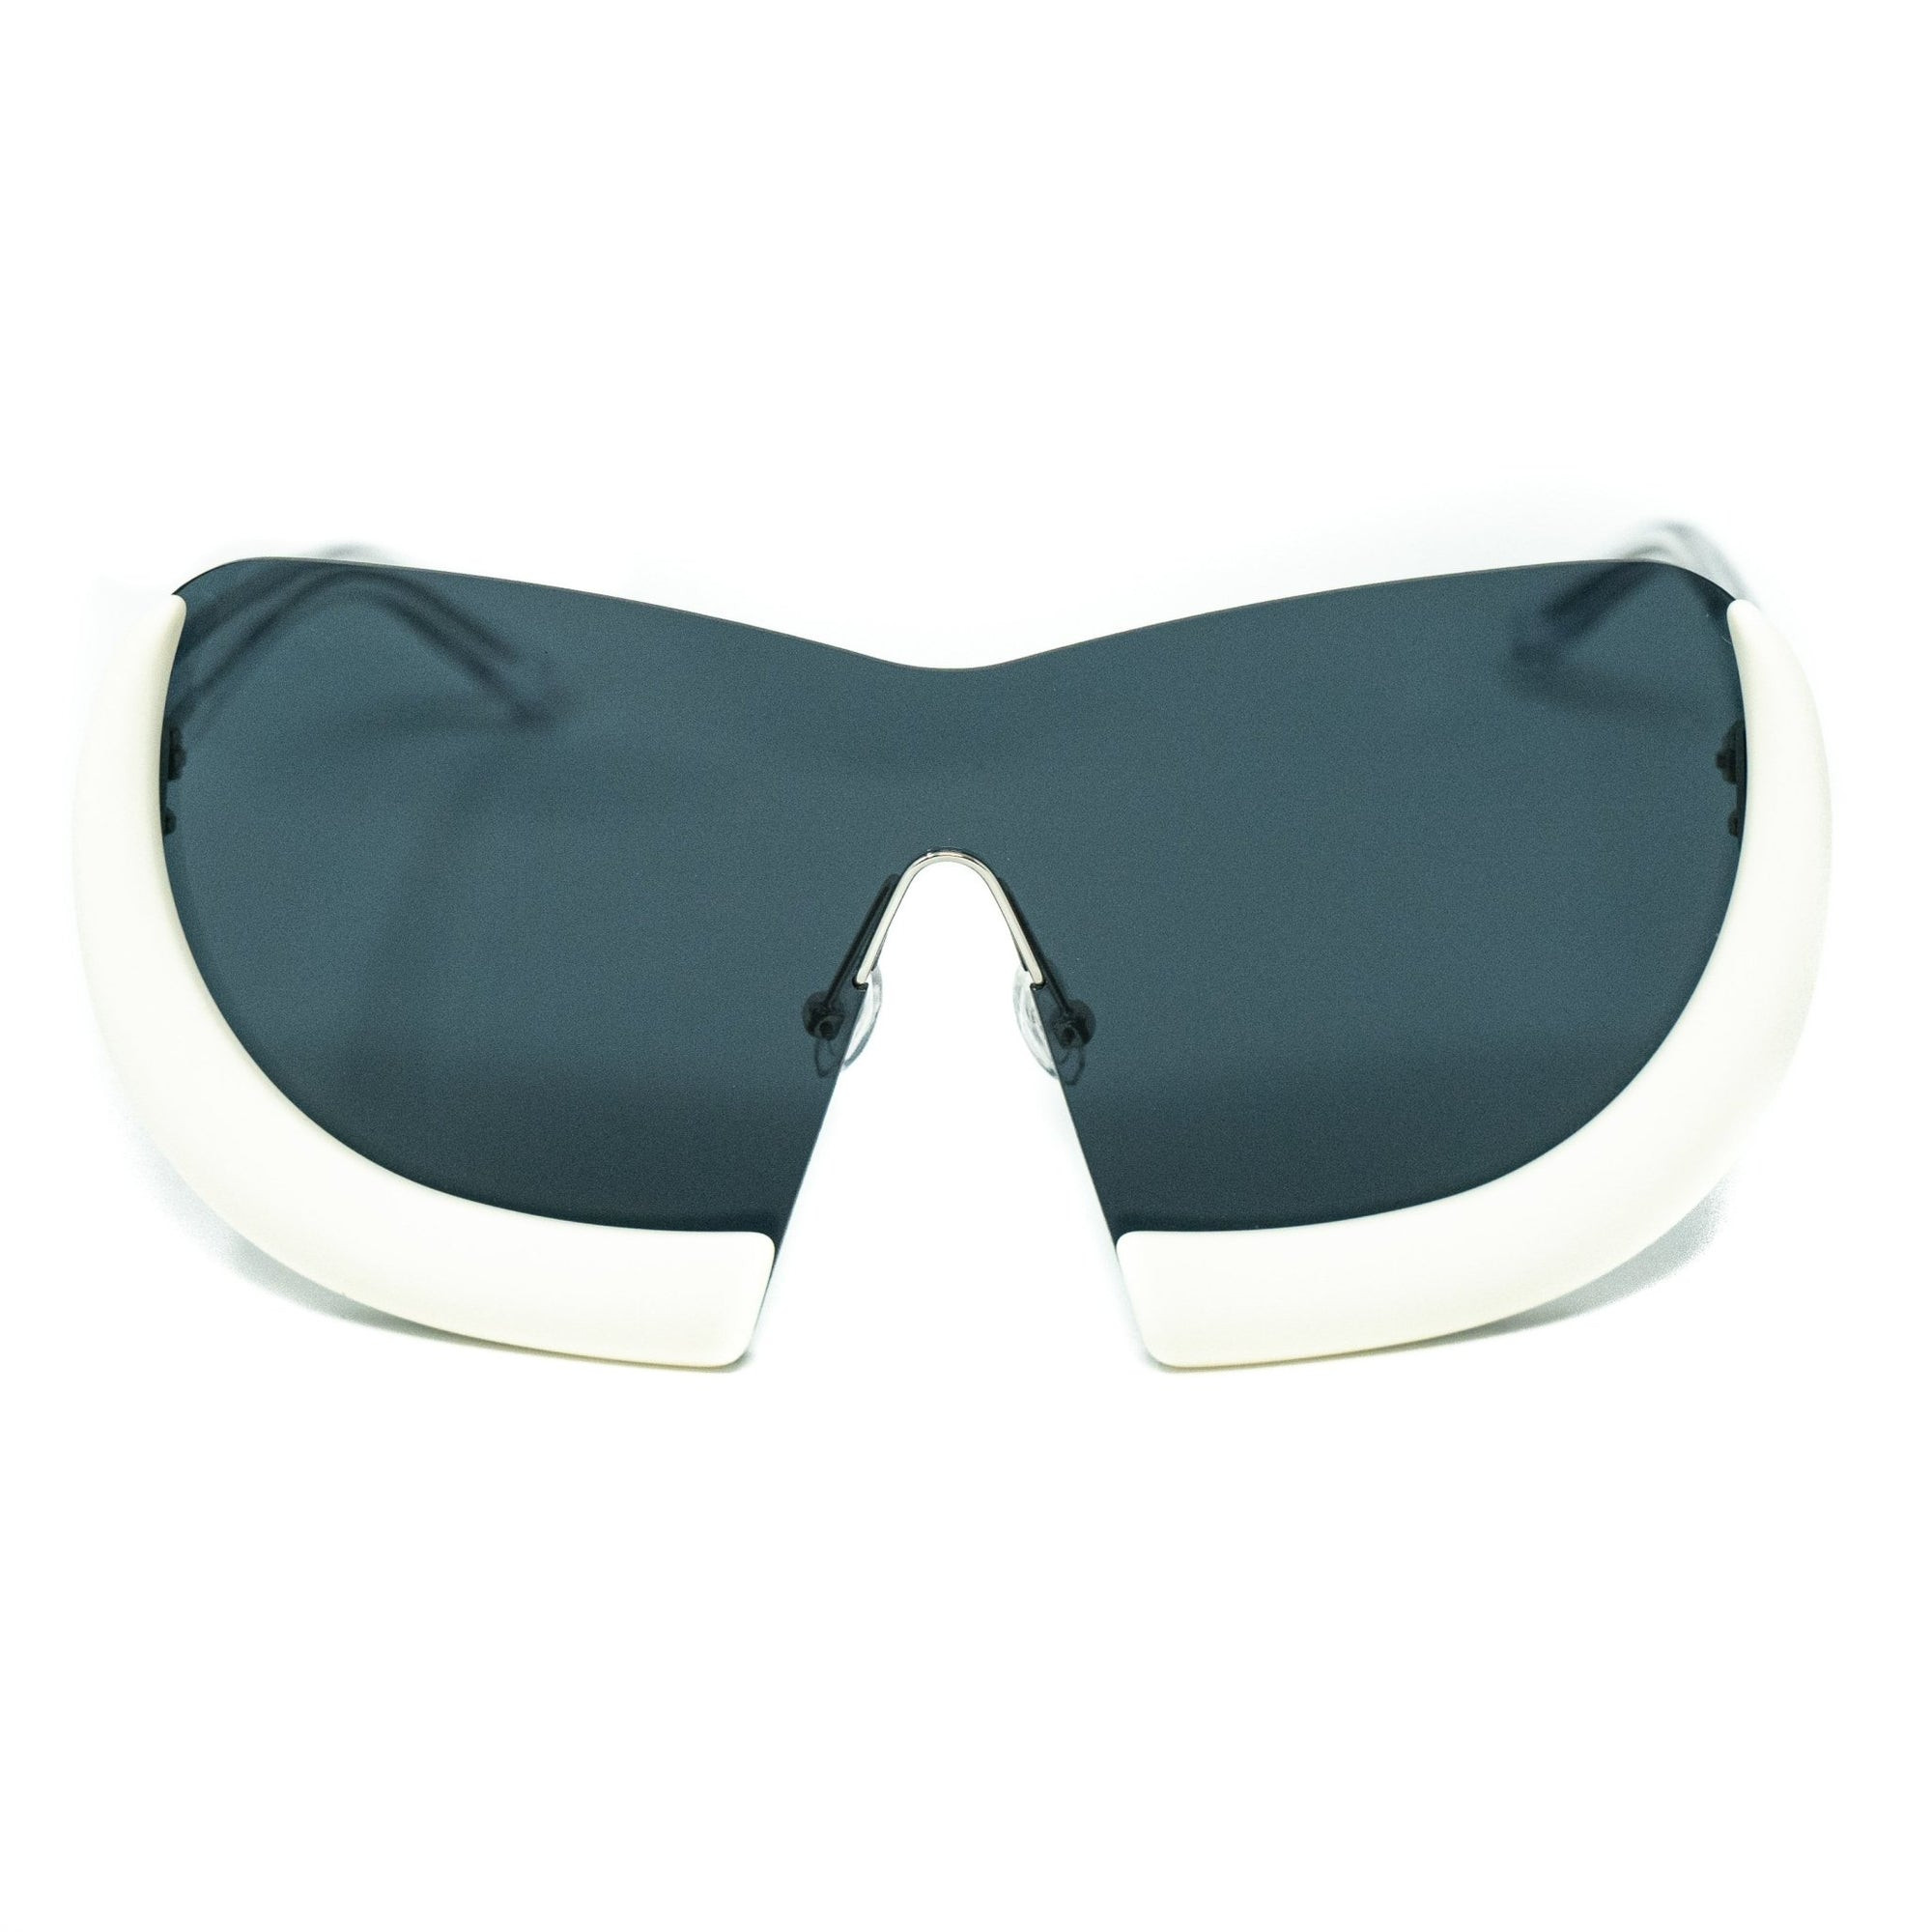 Walter Van Beirendonck Sunglasses Special Shield Frame with Grey Lenses - WVB6C2SUN - Watches & Crystals